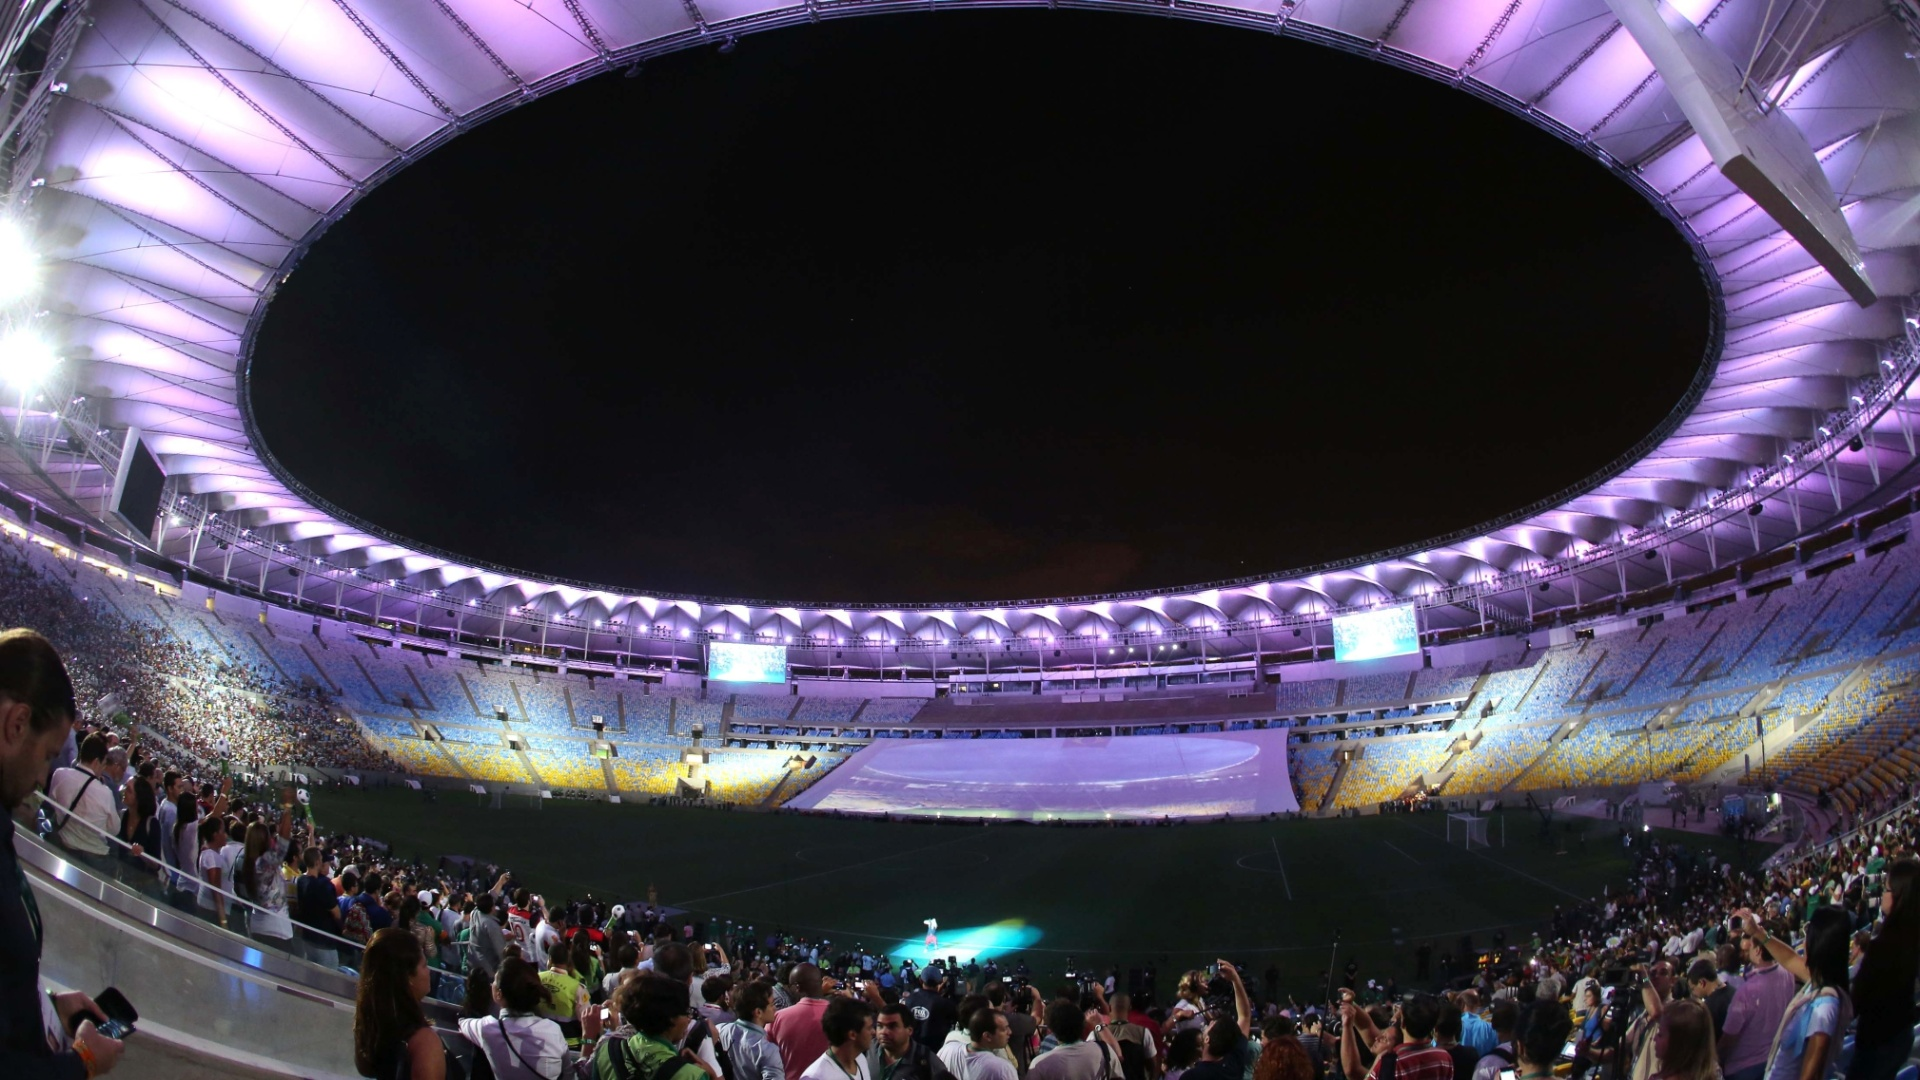 27.abr.2013 - Reabertura do Maracan teve lindo show de luzes antes do jogo entre amigos de Bebeto e amigos de Ronald